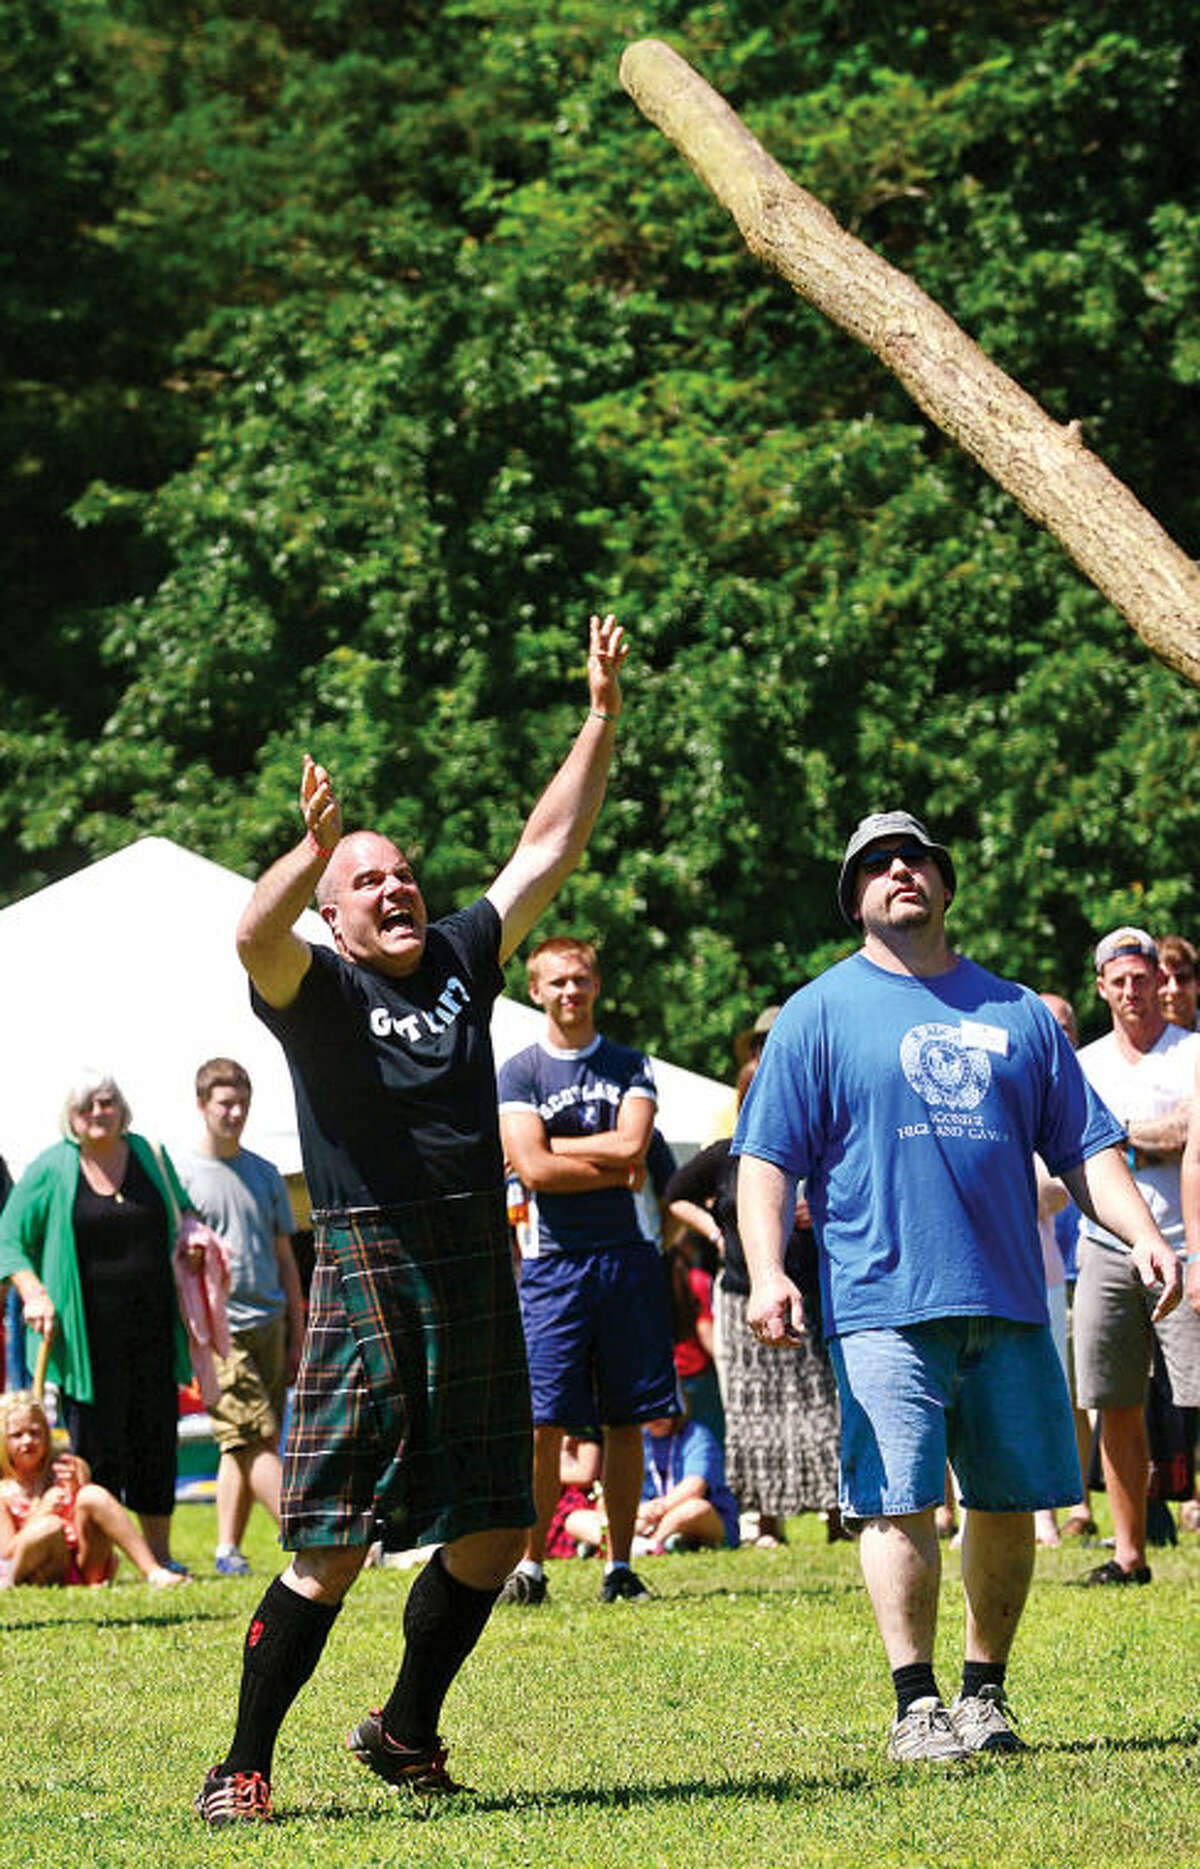 Hour photo / Erik Trautmann Pat Borden tosses the Taber during the 91st Annual Round Hill Highland Games at Cranbury Park Saturday.